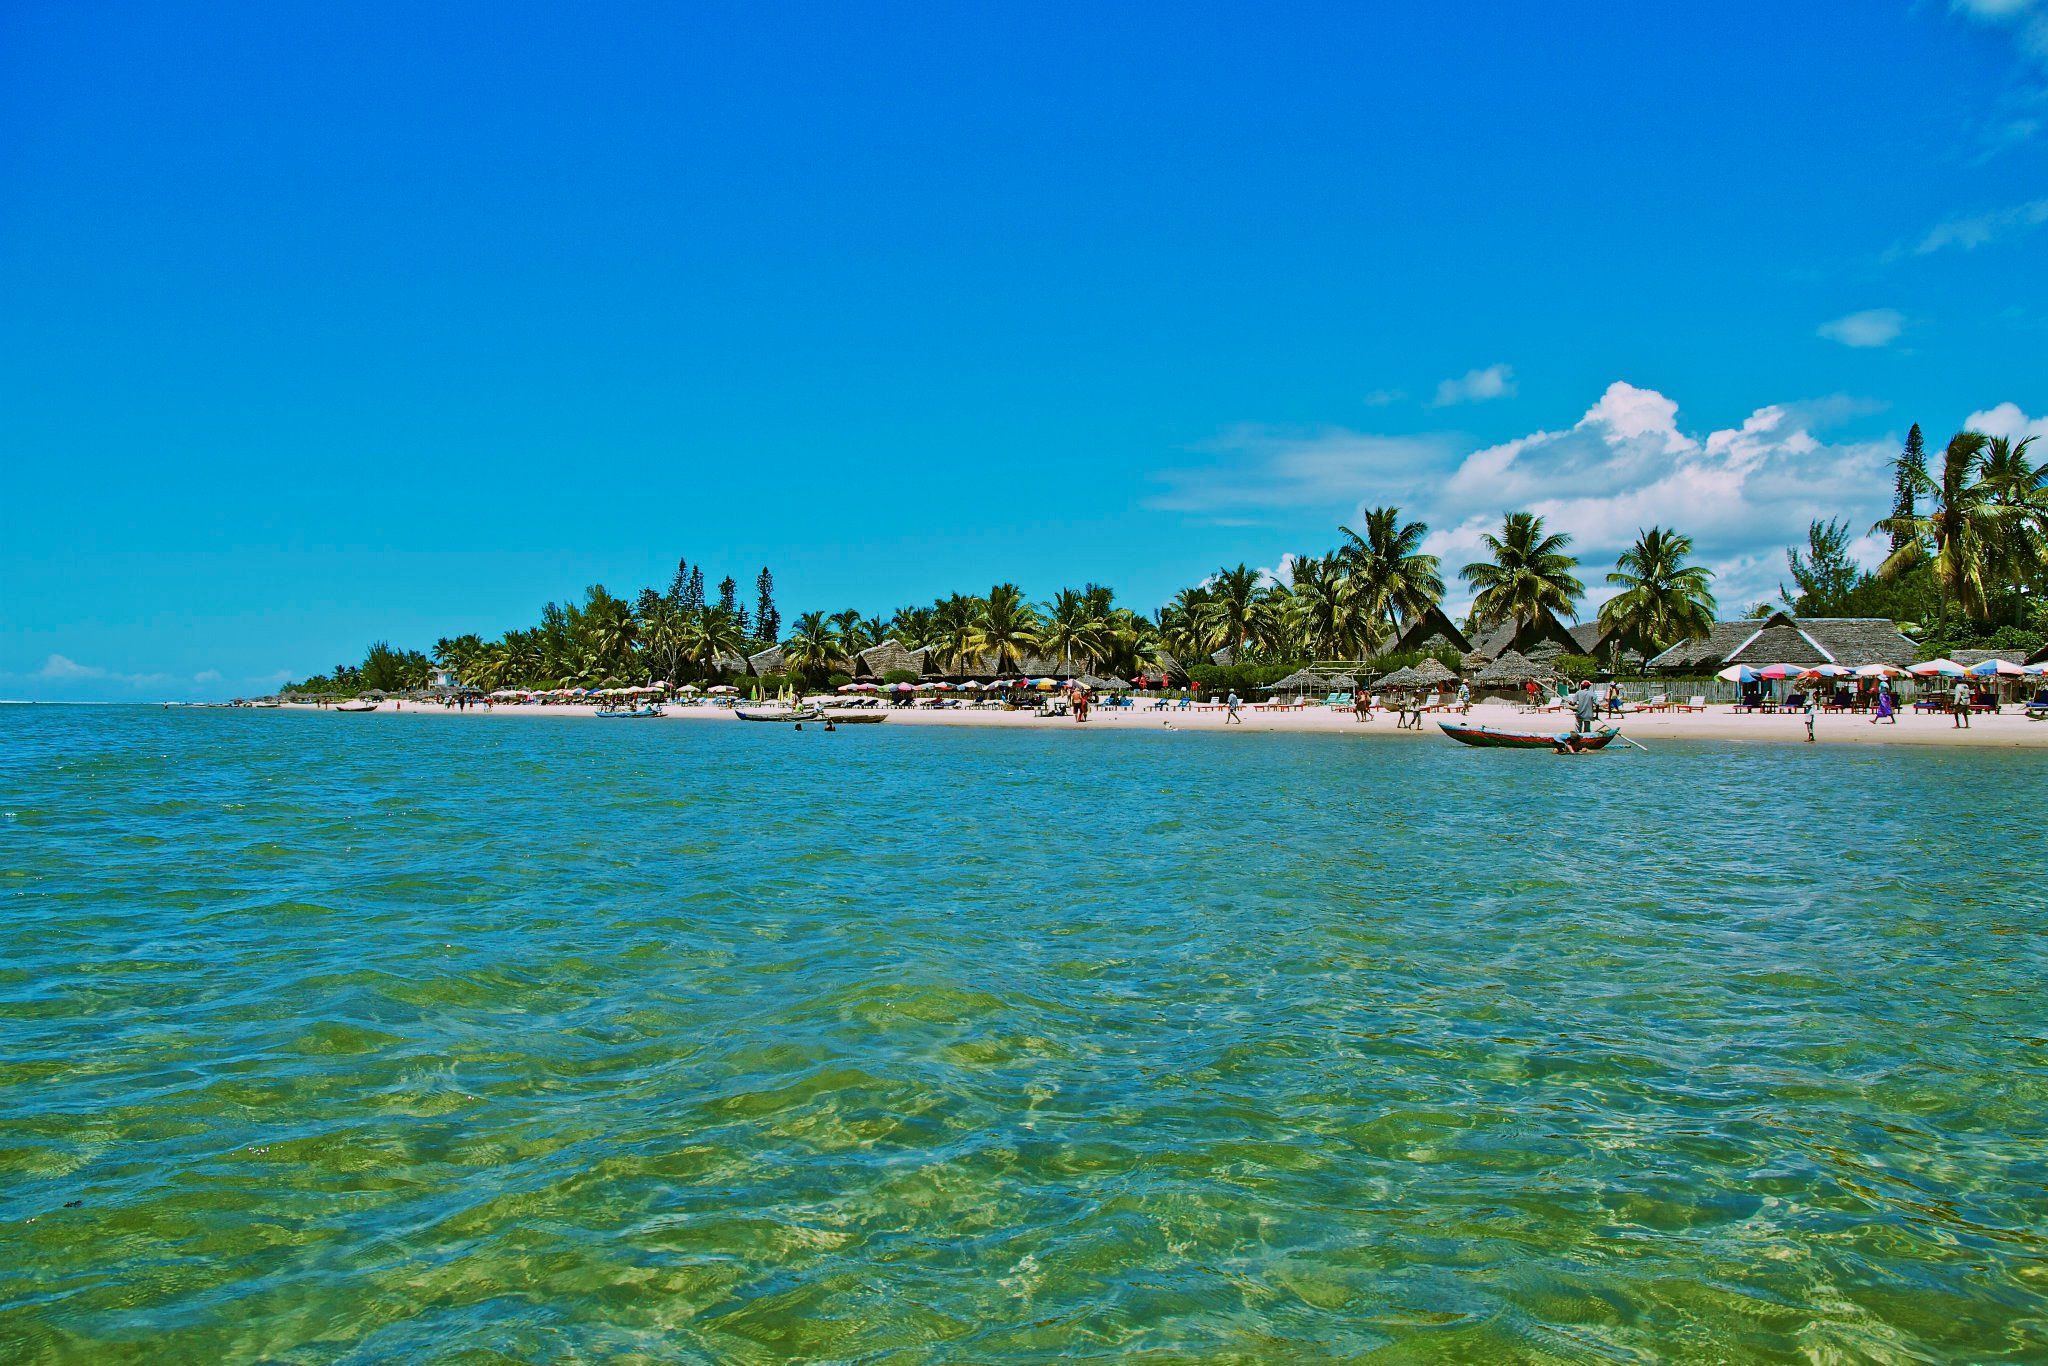 After Mexico, visit Madagascar and its beaches